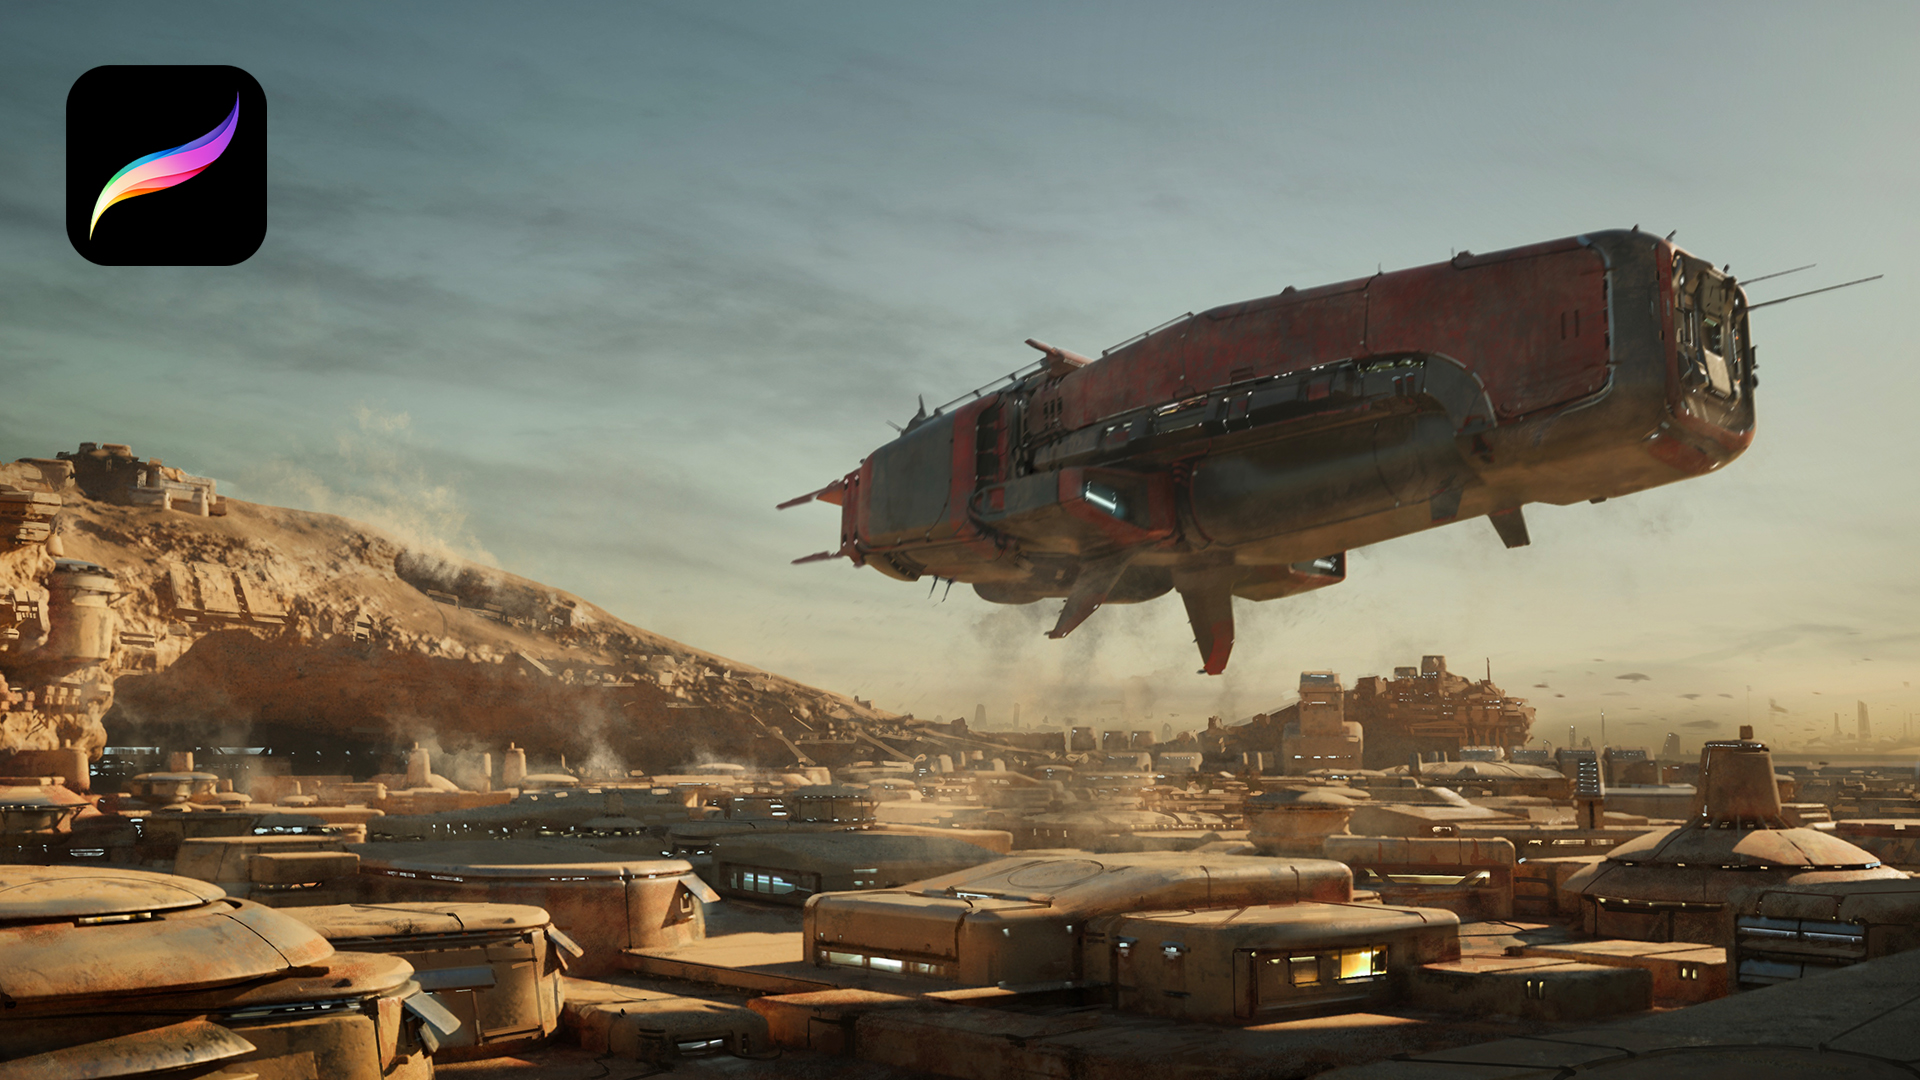 A giant space ship hovers over a dusty town